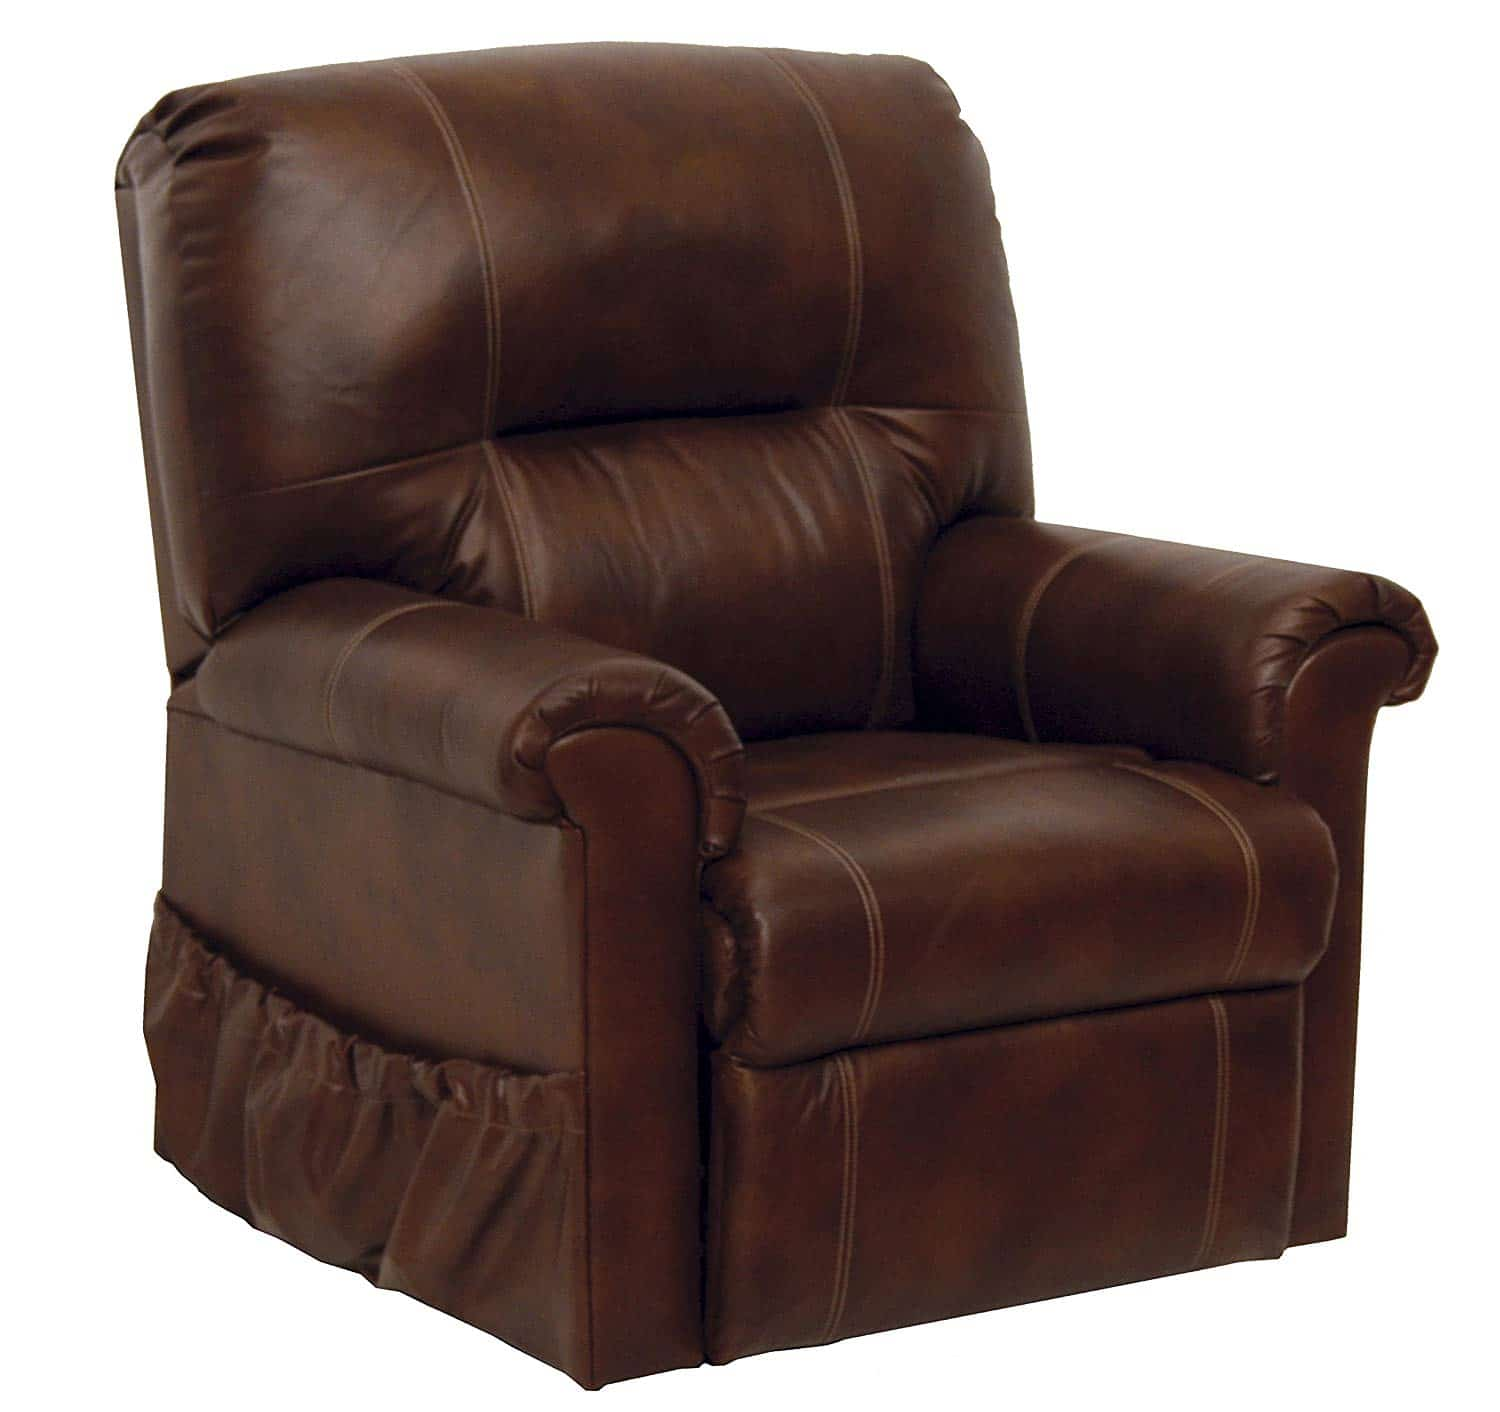 Catnapper Recliner Reviews